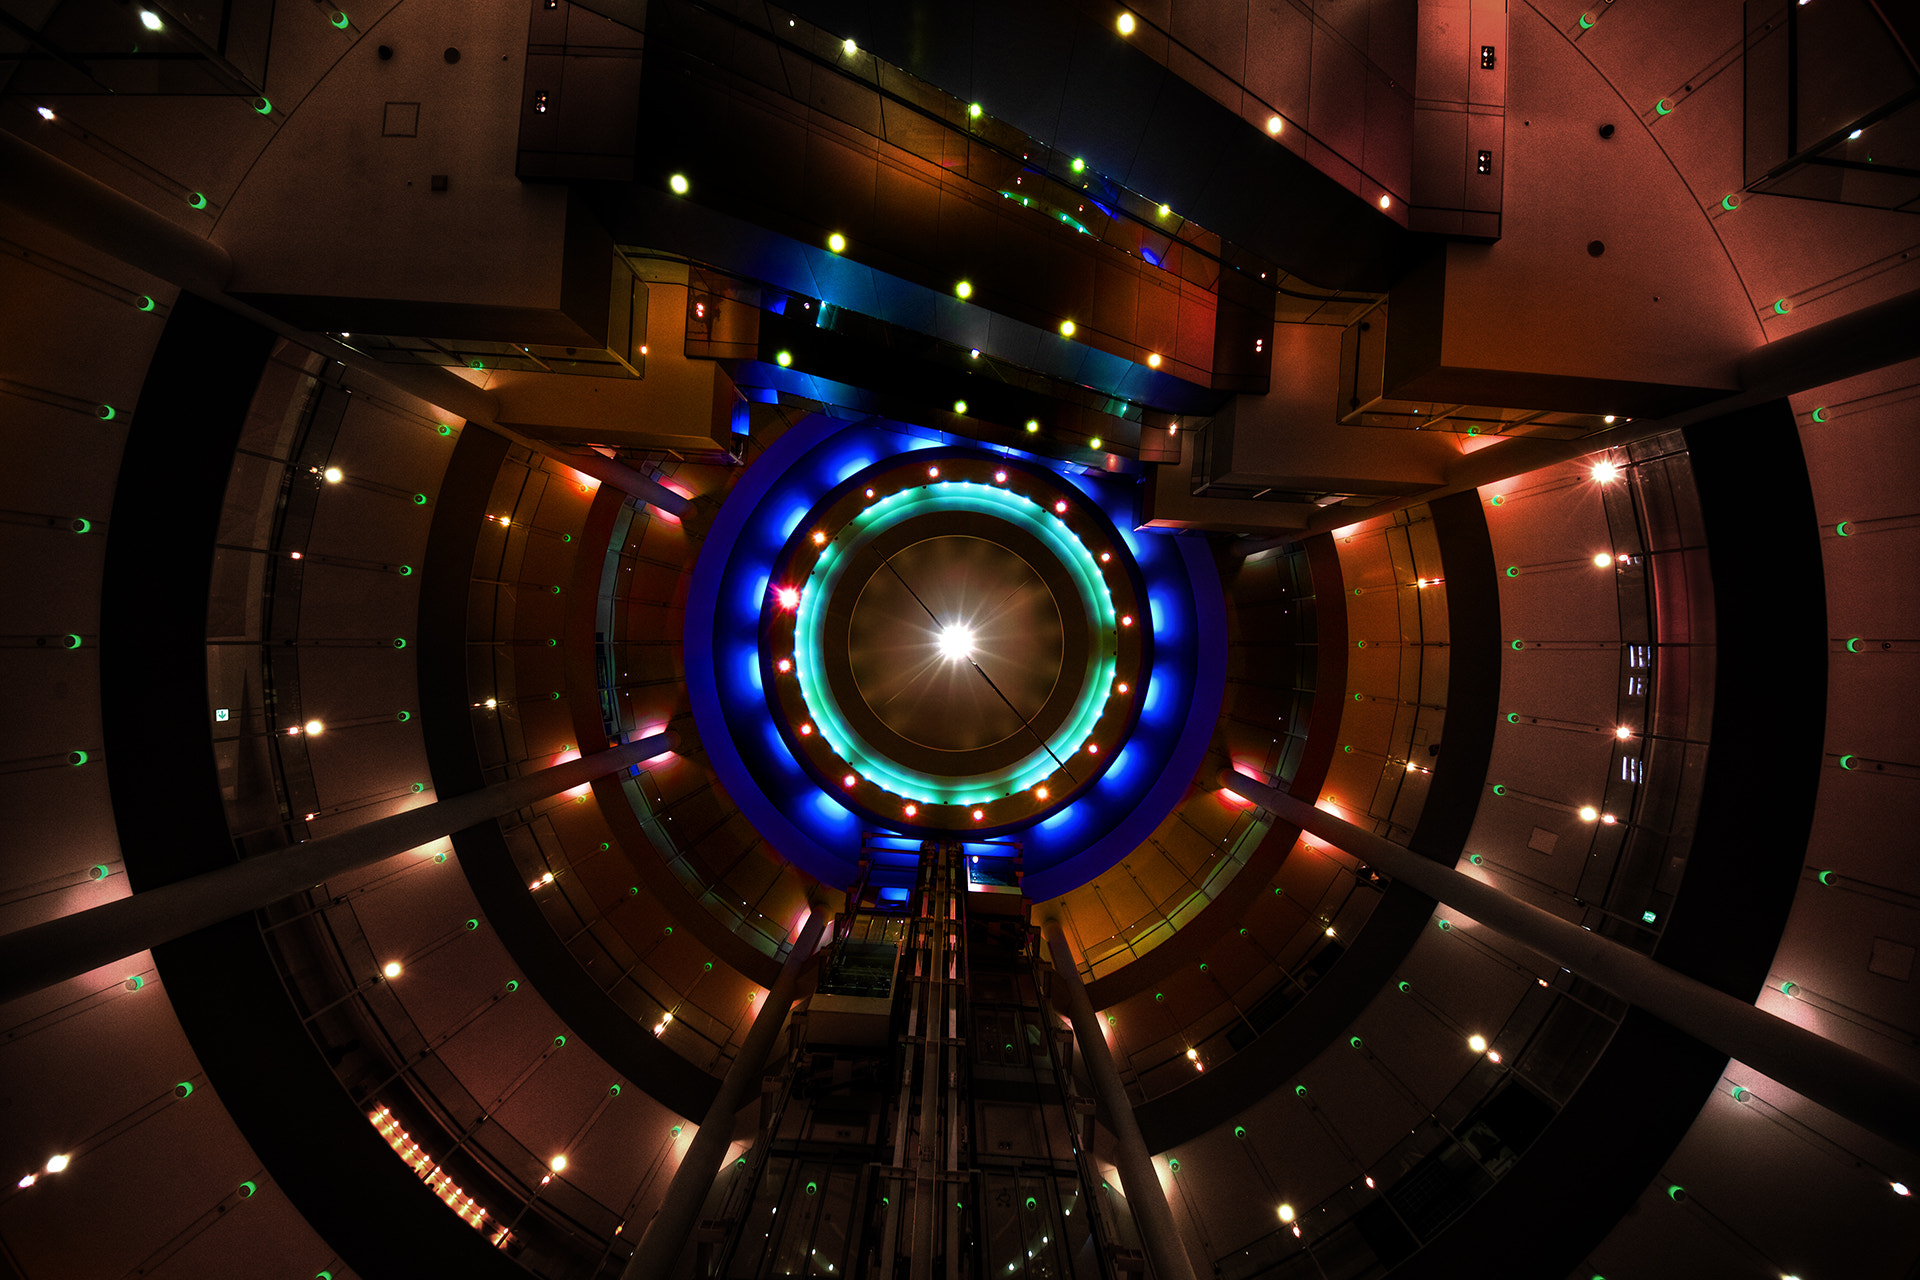 Photograph Inside the Starbase by Azul Obscura on 500px